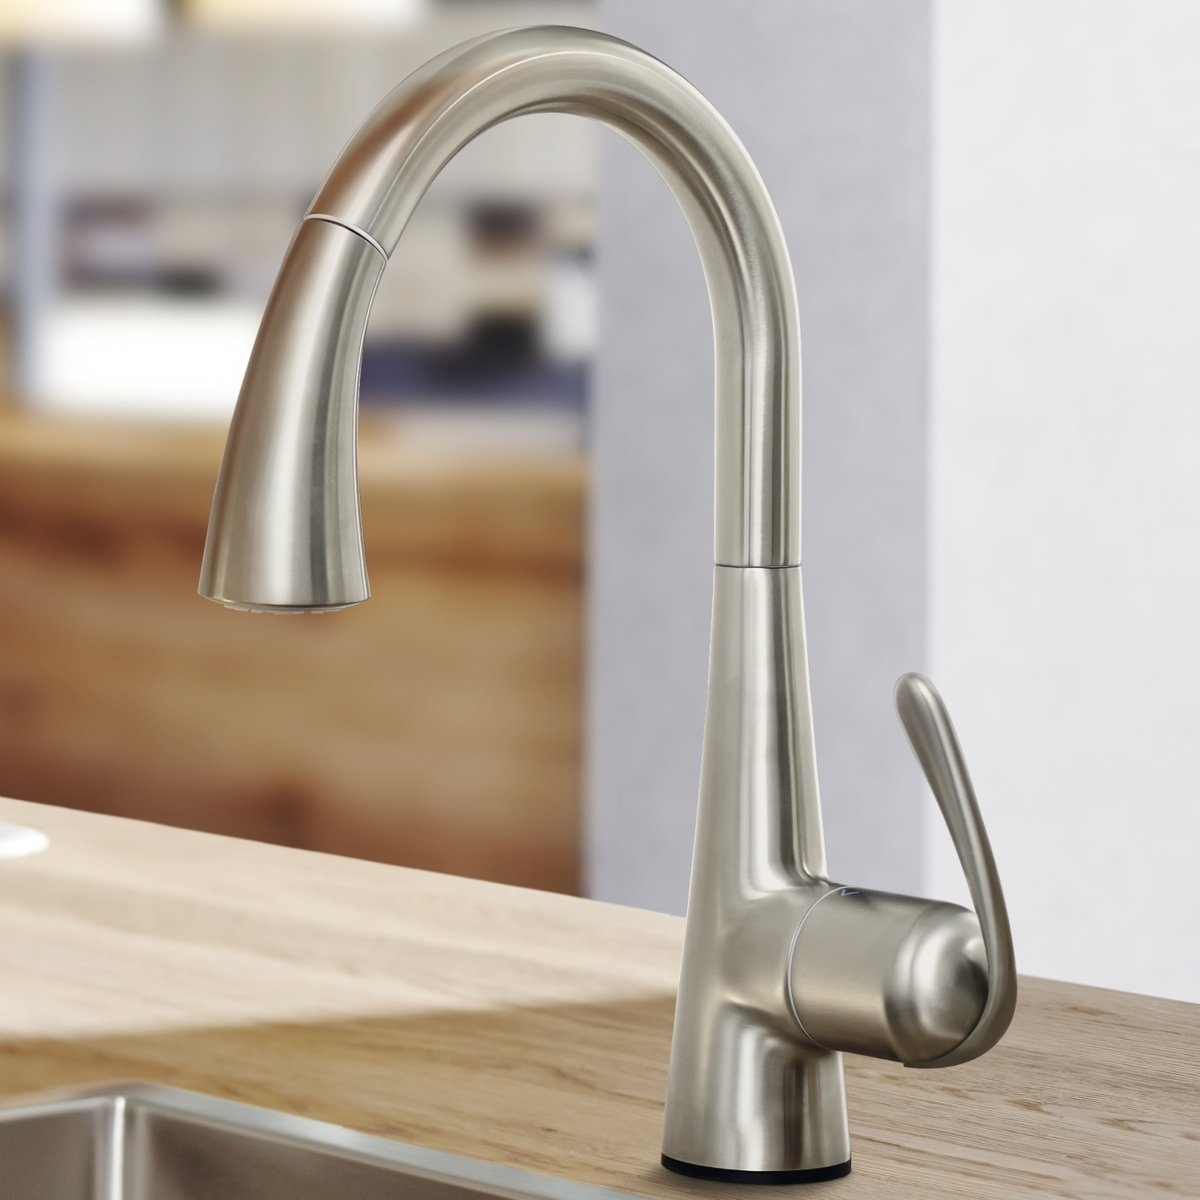 Grohe zedra touch robinet de cuisine lectronique avec bec for Robinet de cuisine avec douchette grohe